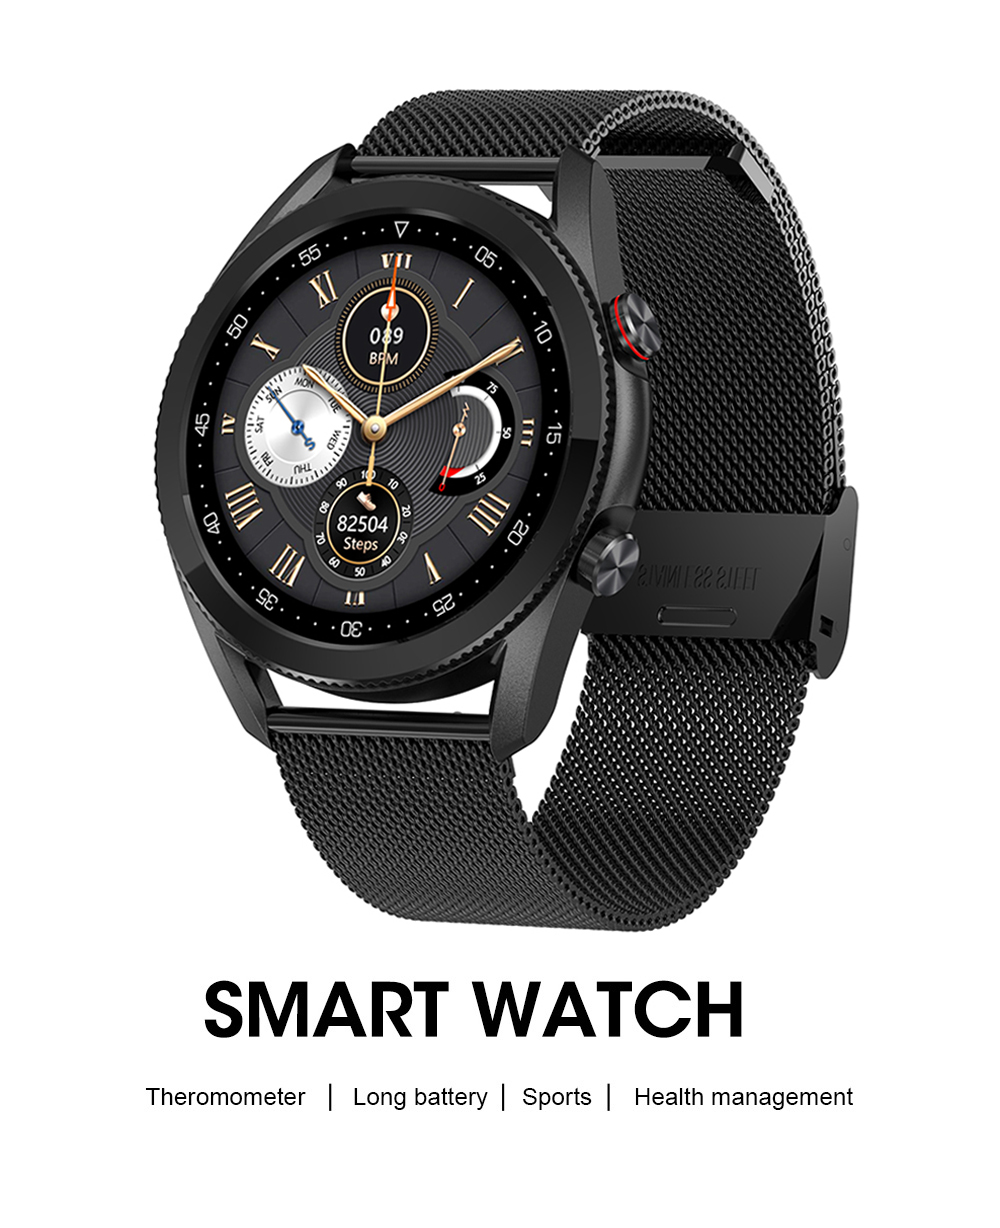 Hcee2779dea934bf580d2a0c310ef01f0X Timewolf Smart Watch Men 2021 IP68 Waterproof Android Full Touch Sports Smartwatch Bluetooth Call For Samsung Huawei Android IOS